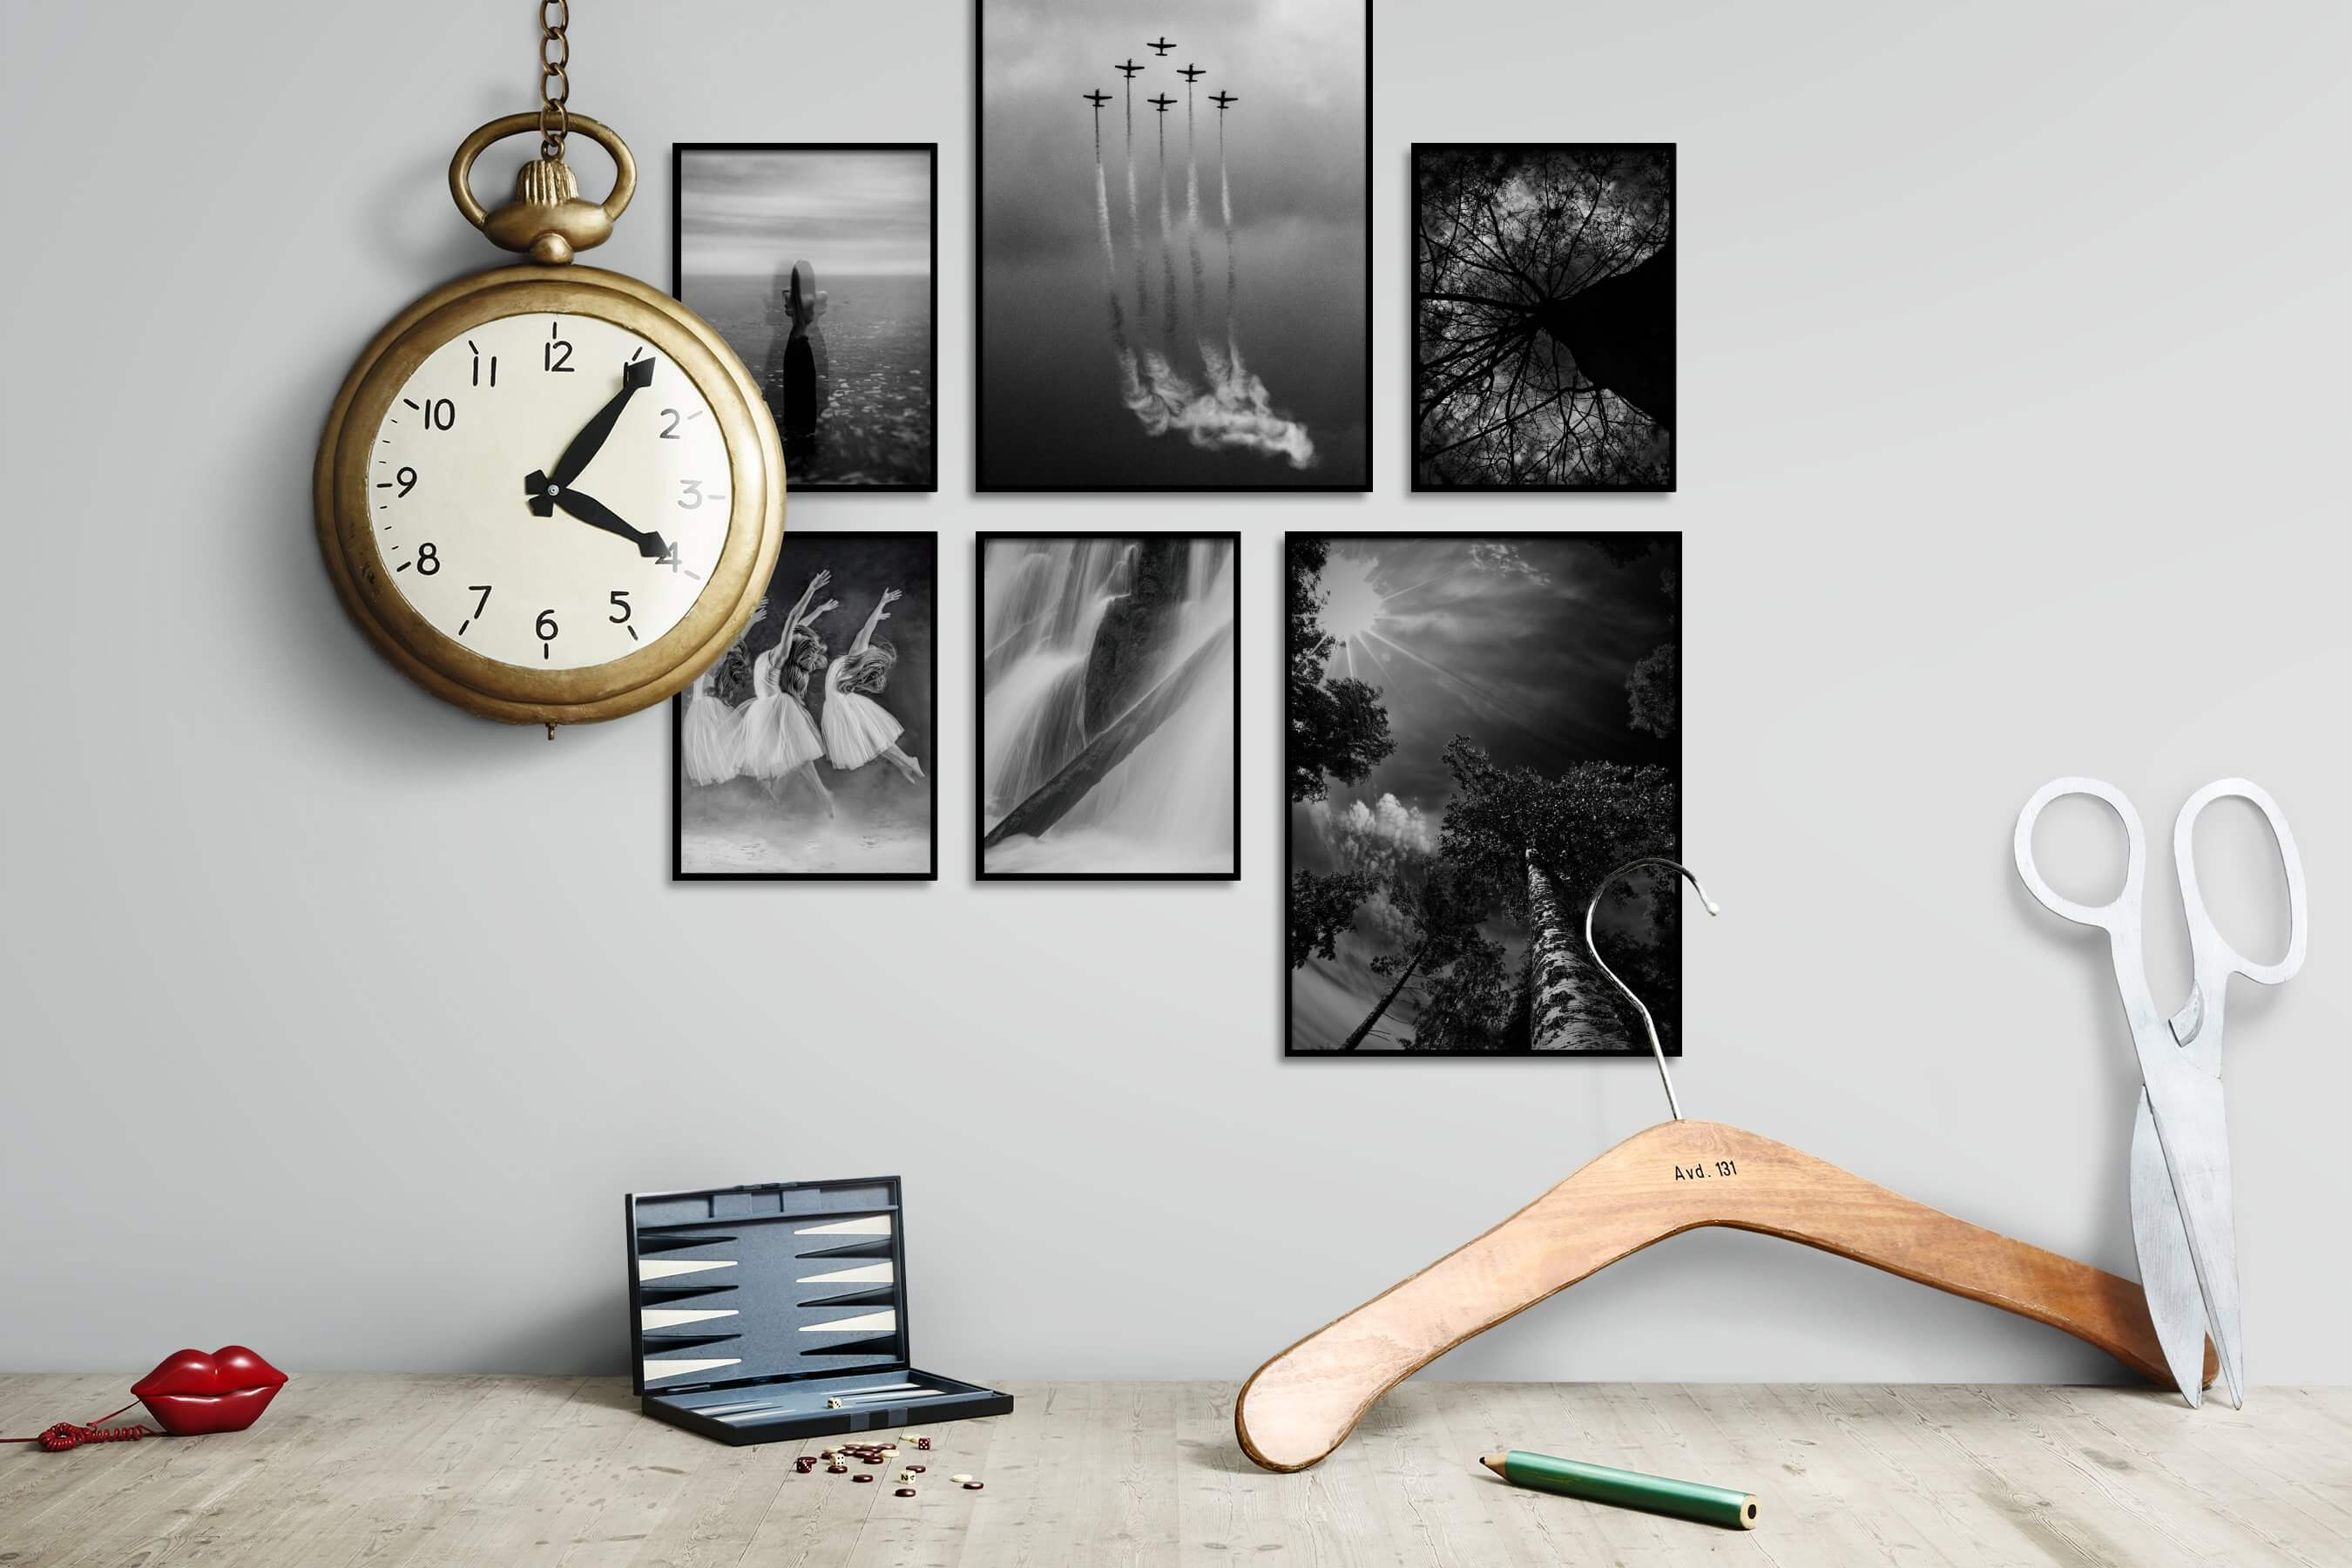 Gallery wall idea with six framed pictures arranged on a wall depicting Artsy, Black & White, For the Minimalist, Fashion & Beauty, Nature, and For the Moderate